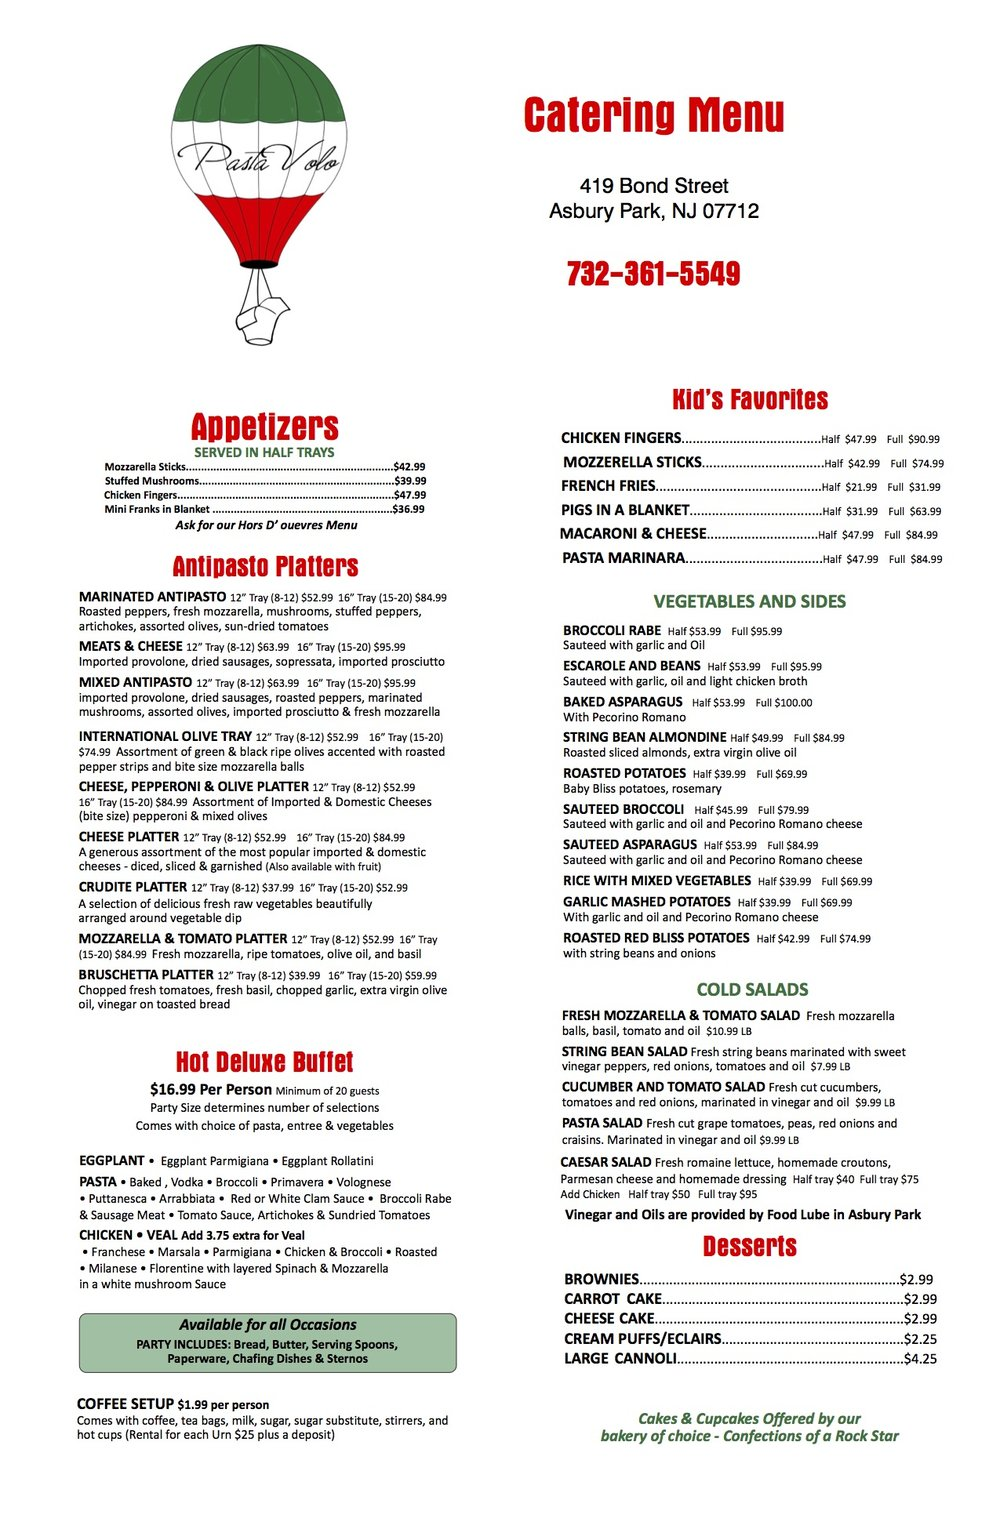 Catering Menu for Website.jpg